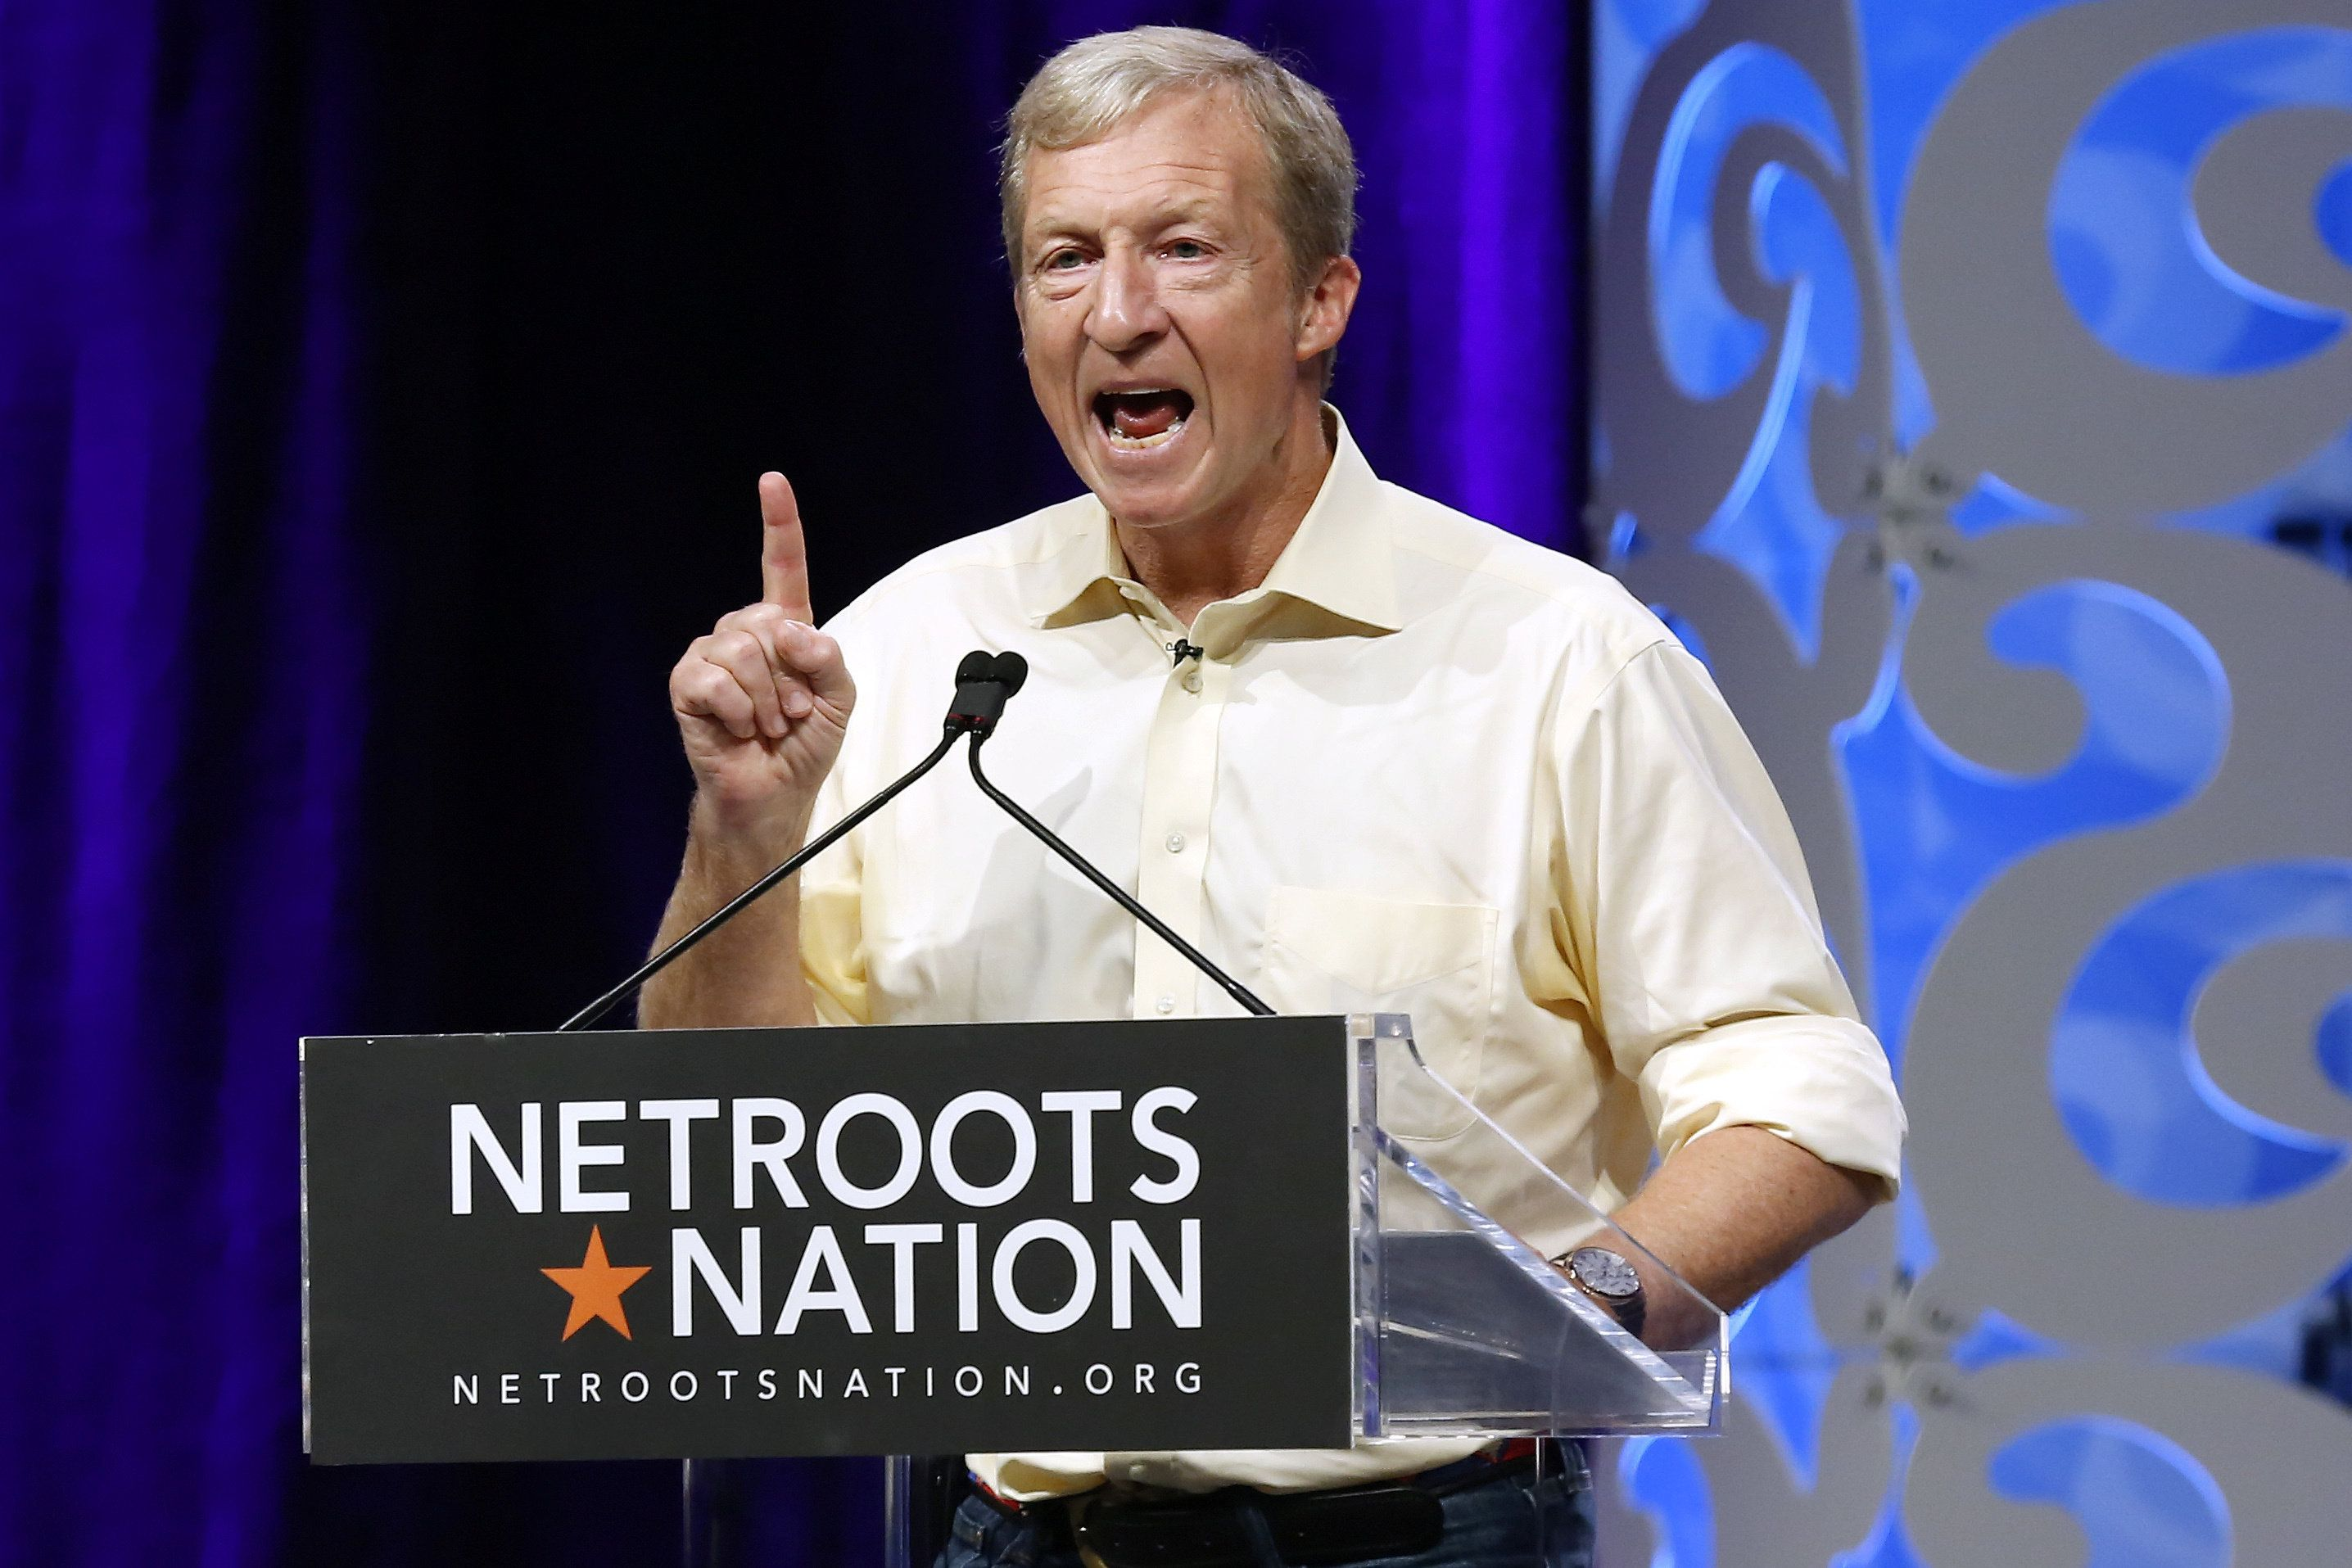 Tom Steyer speaks at the Netroots Nation conference in New Orleans, Louisiana, on Thursday, Aug. 2, 2018. The liberal donor c